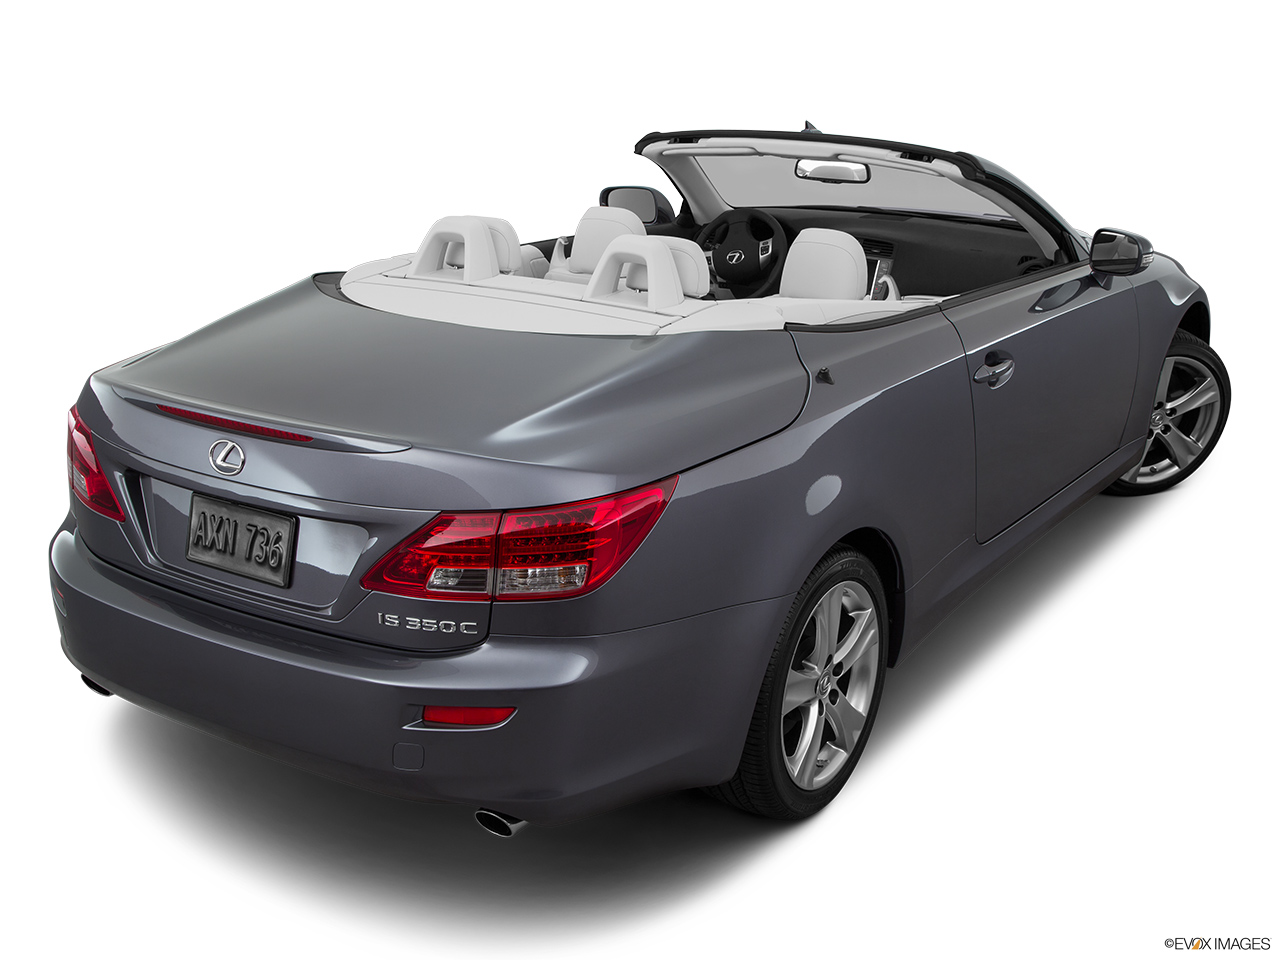 2015 Lexus IS C IS 350 Rear 3/4 angle view.